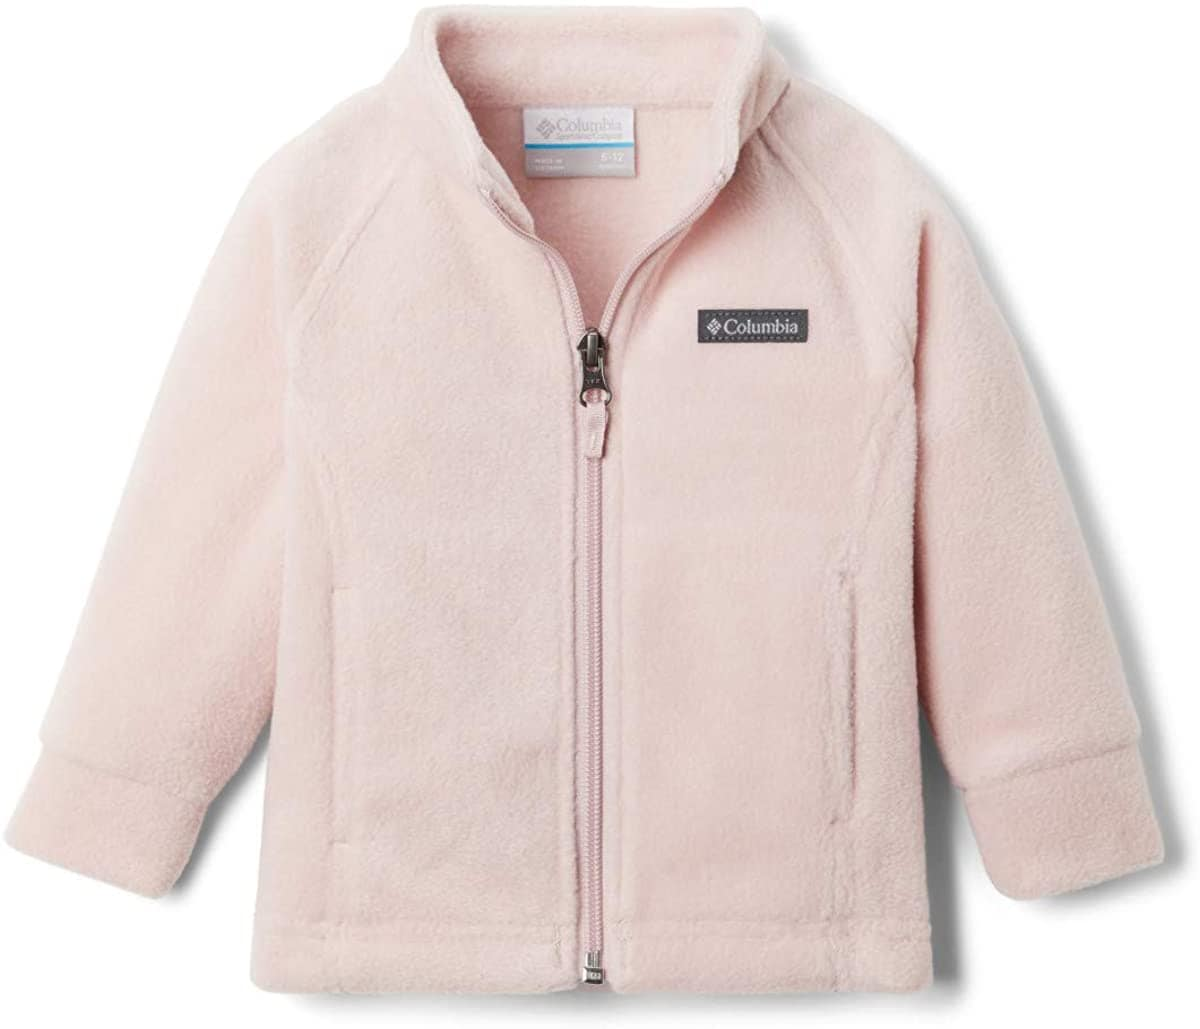 The Benton Springs for girls offers insulation in a versatile, everyday style